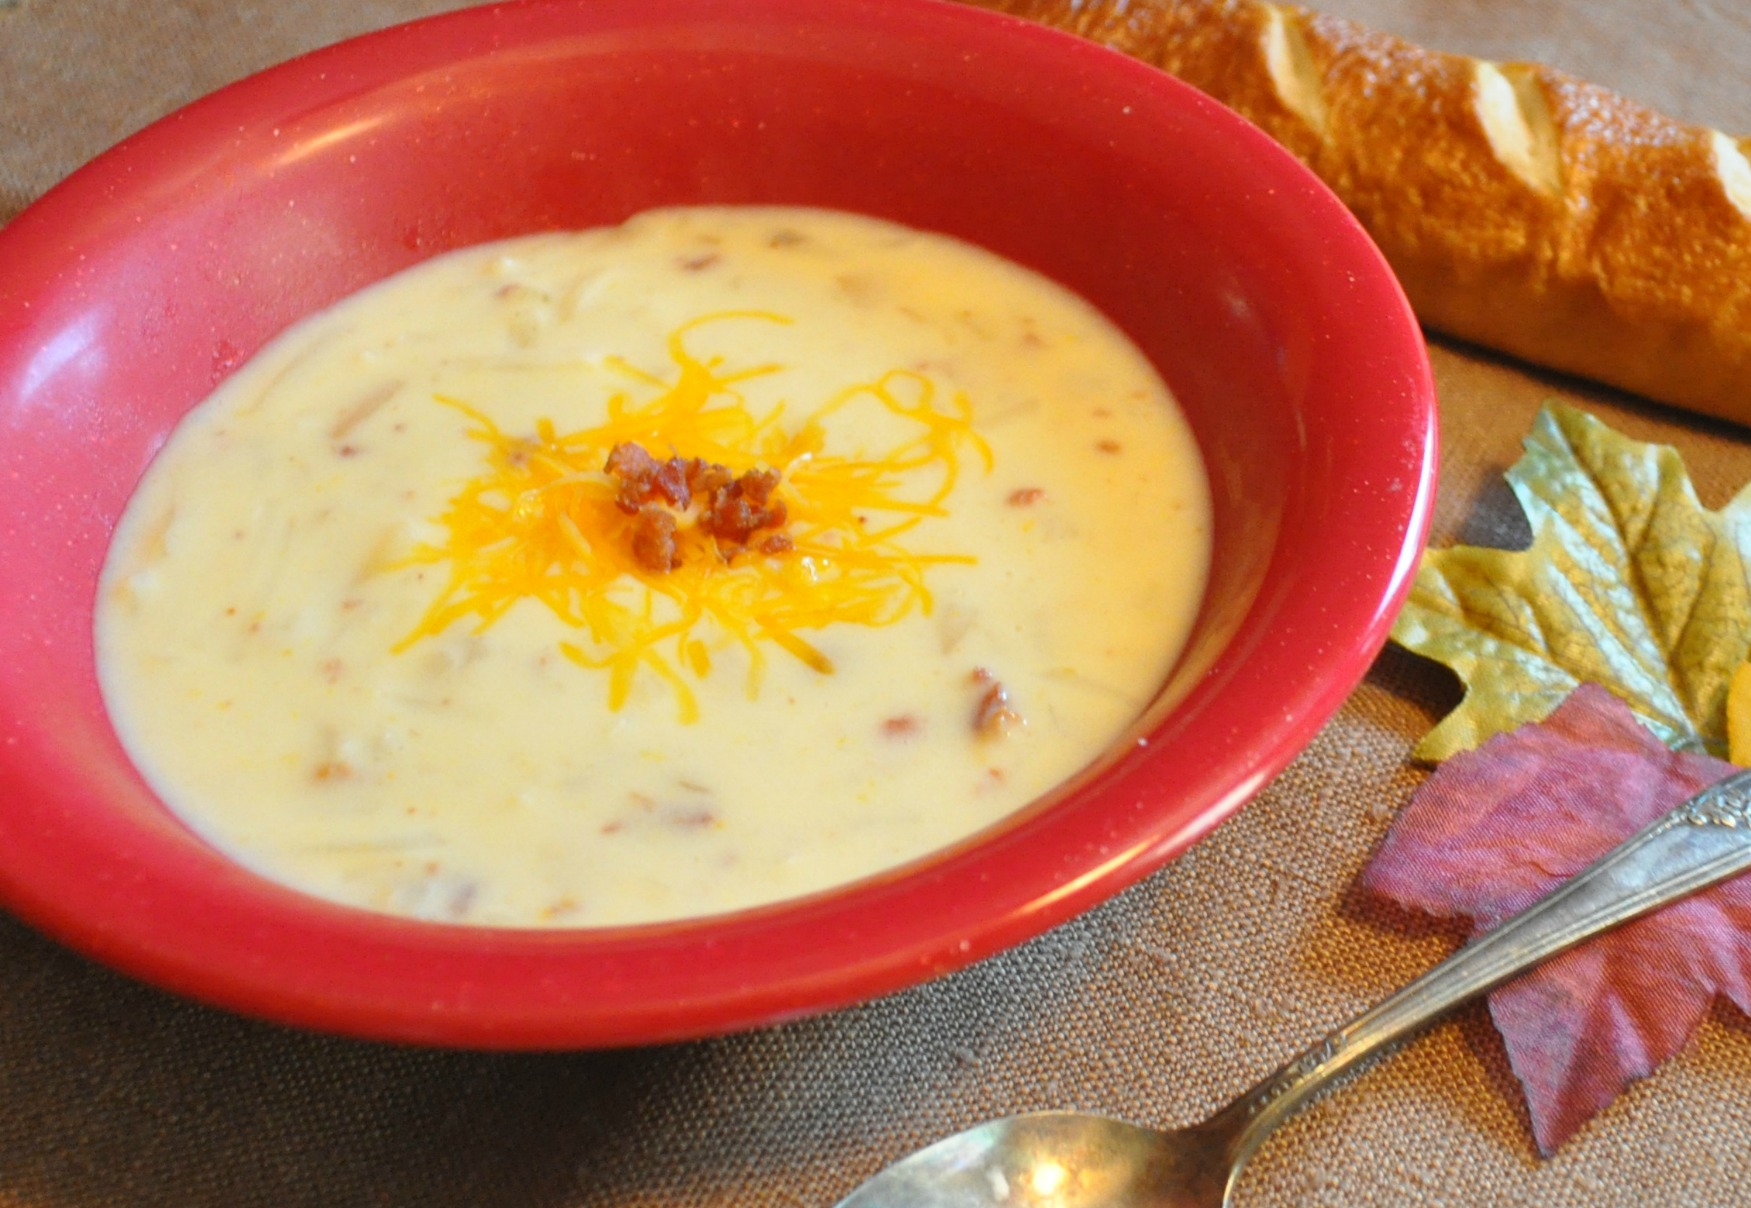 easy homemade soups, stews and chowders